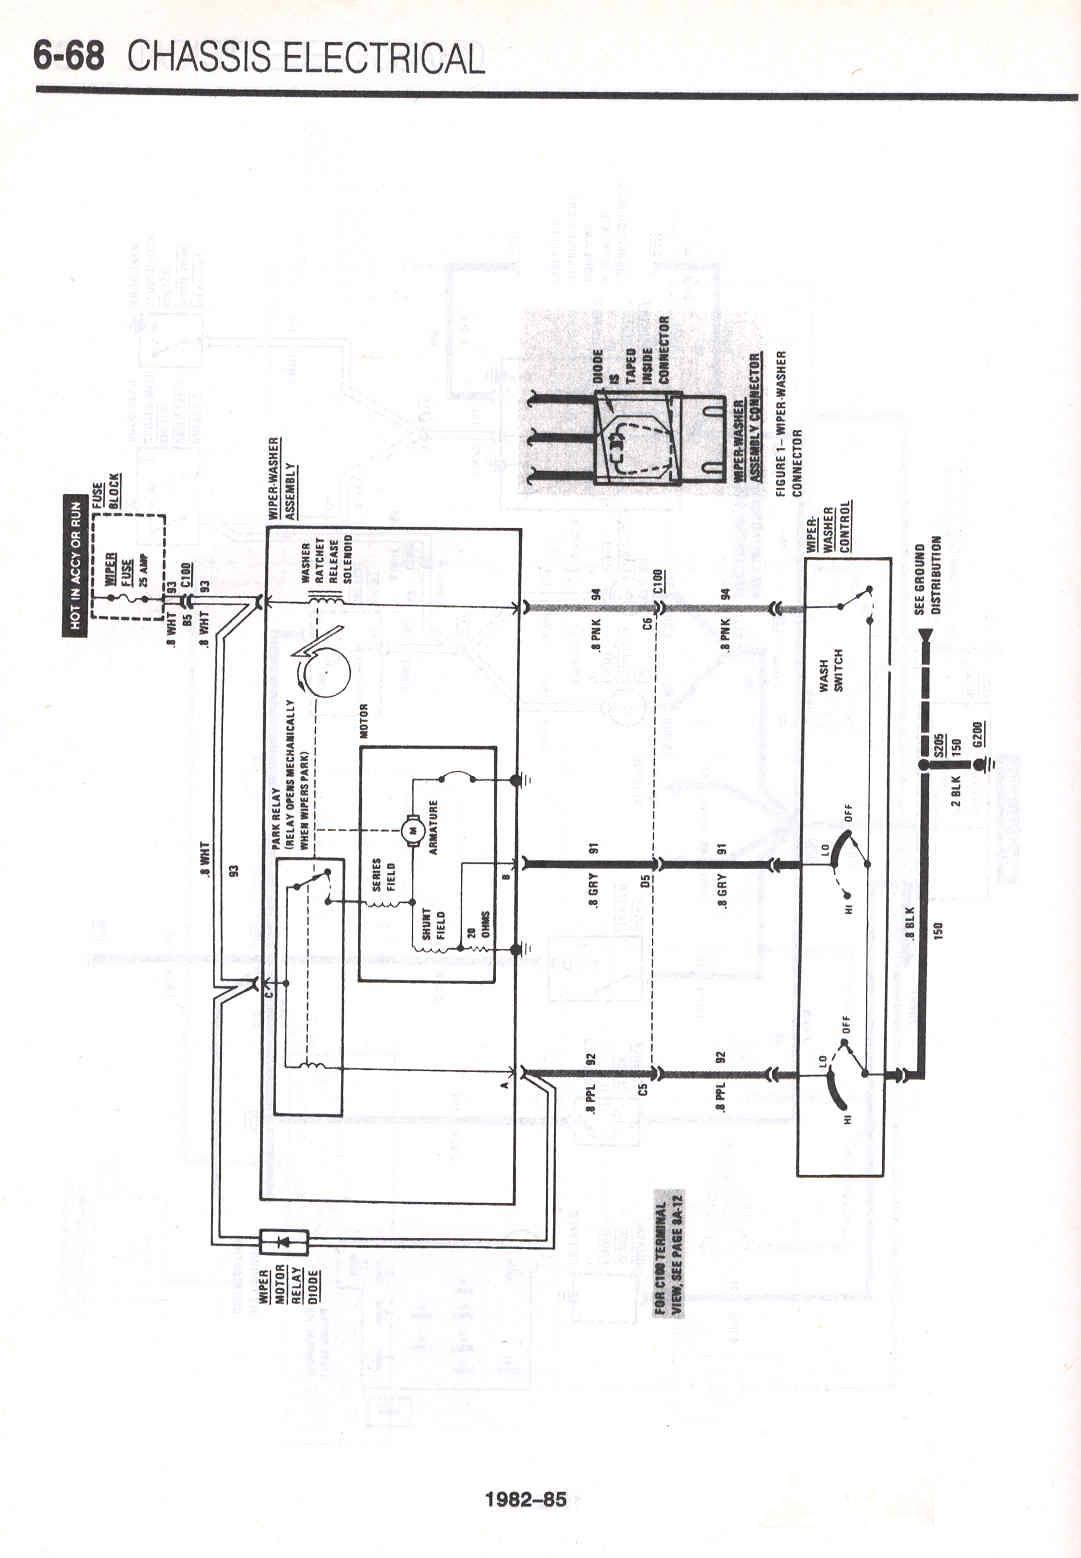 hight resolution of electric choke wiring diagram 84 caprice wiring diagram third level car info one wire electric choke